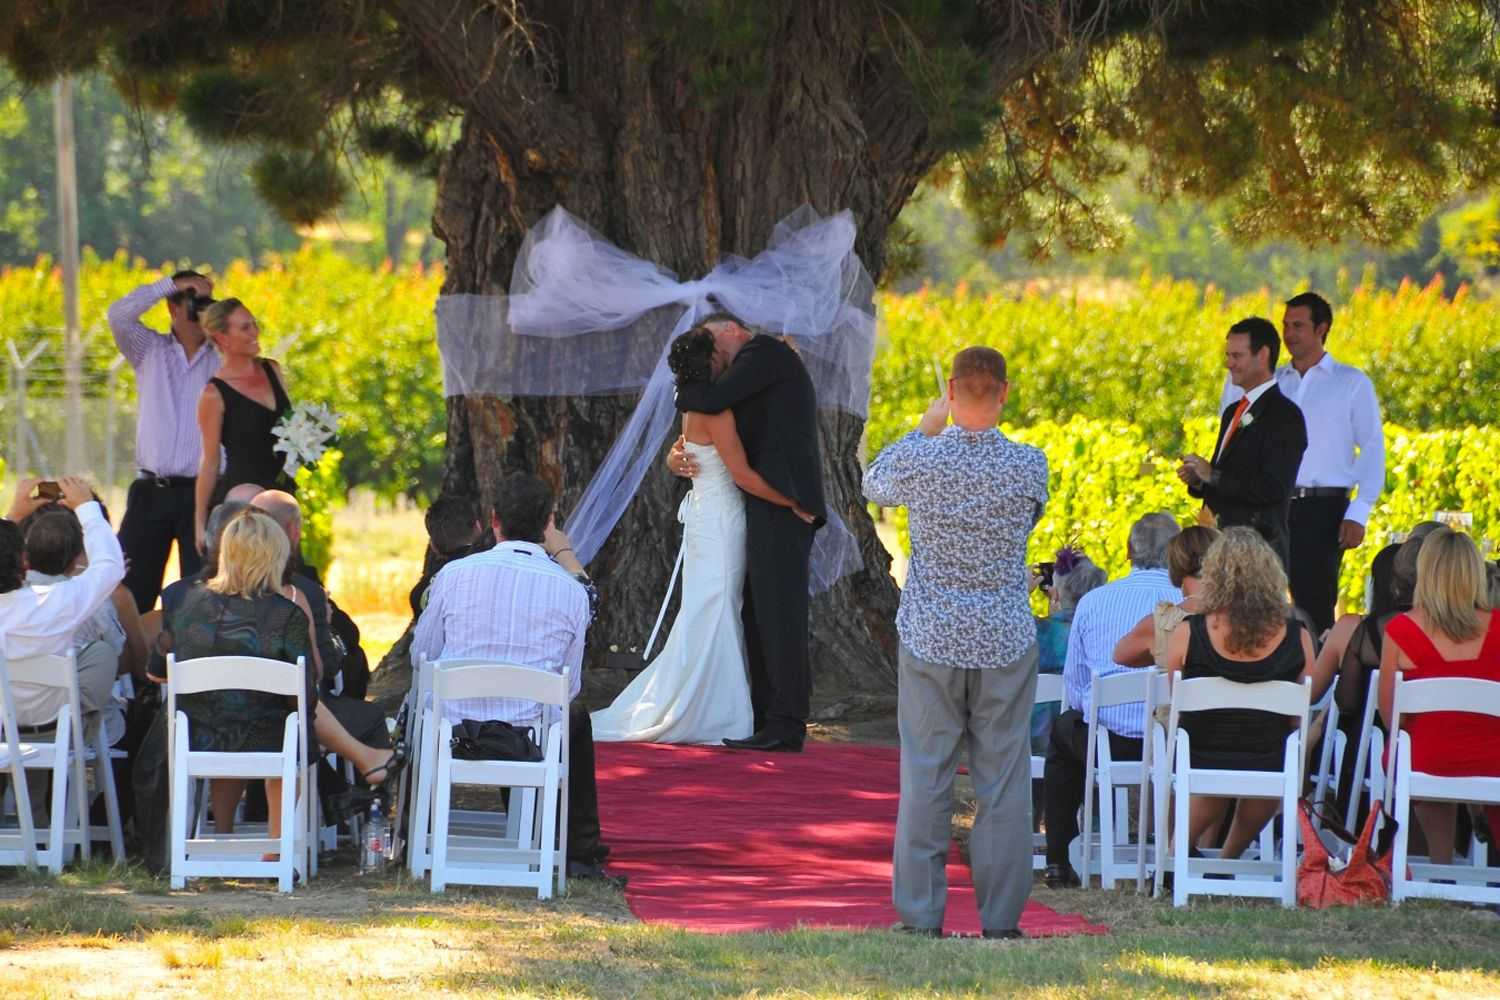 Wedding-under-the-wooing-tree